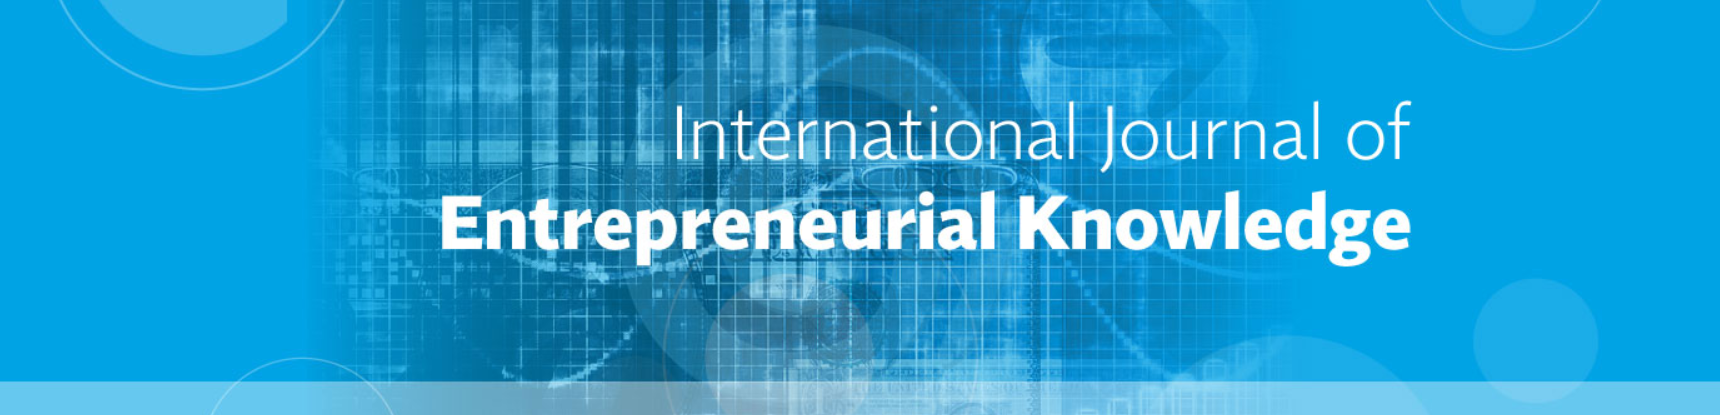 International Journal of Entrepreneurial Knowledge